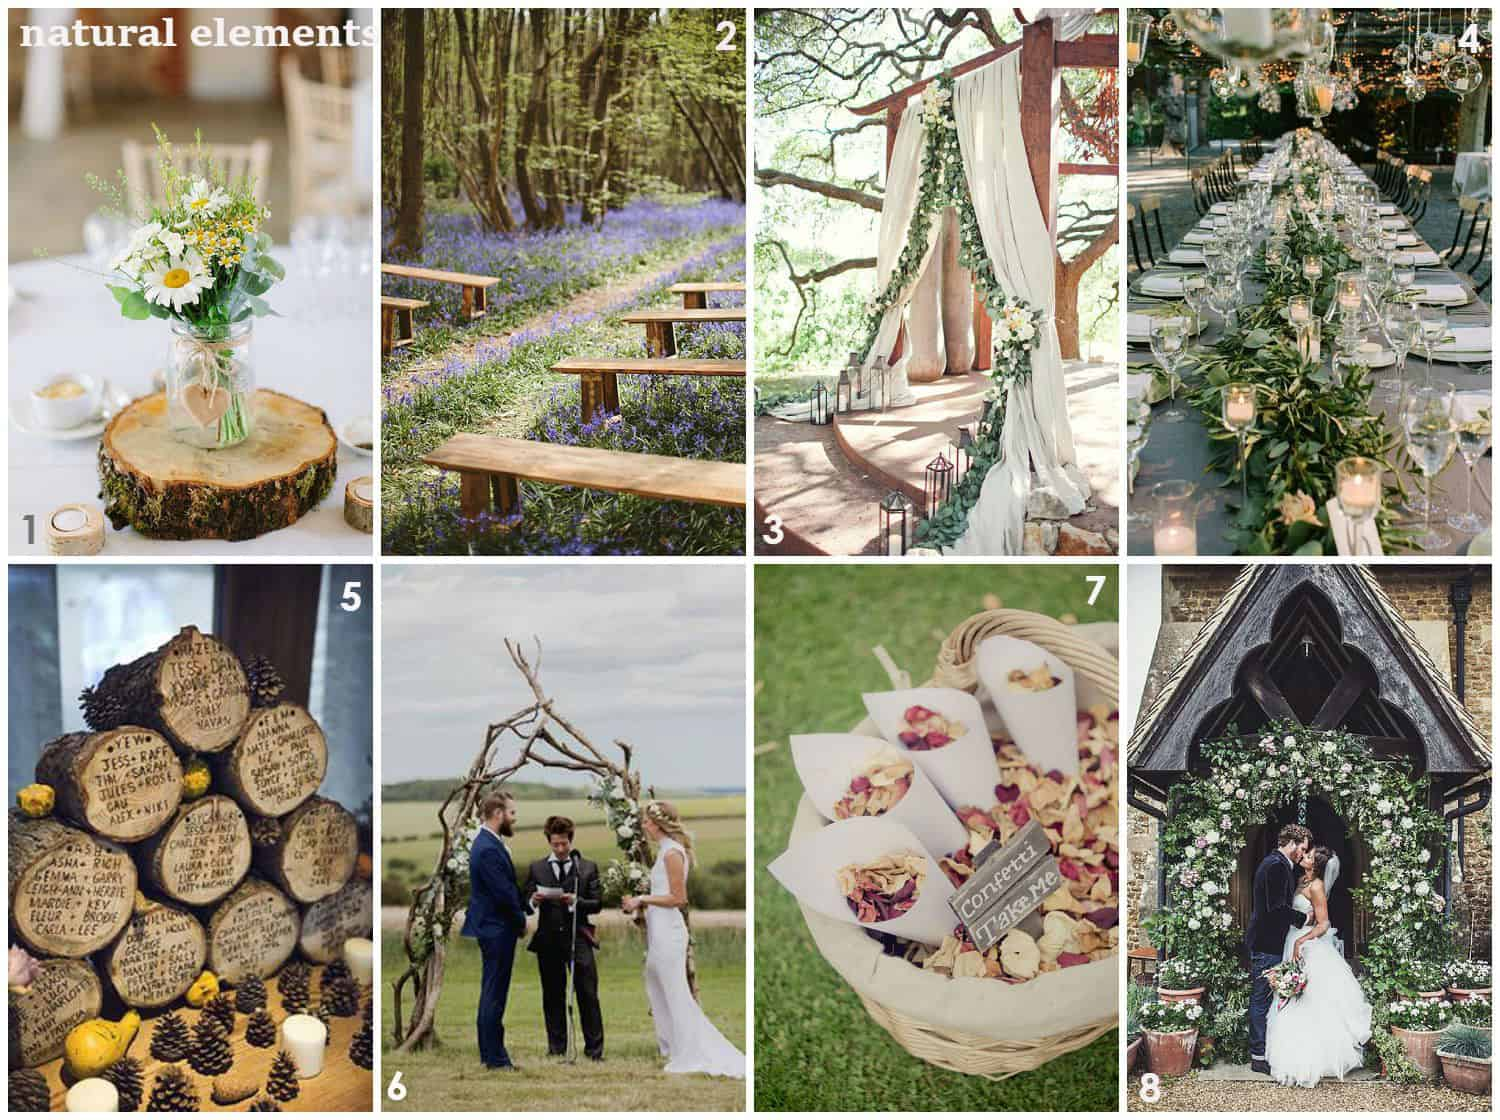 2019 wedding trends, natural elements, floral, stone, shell, wood, nature